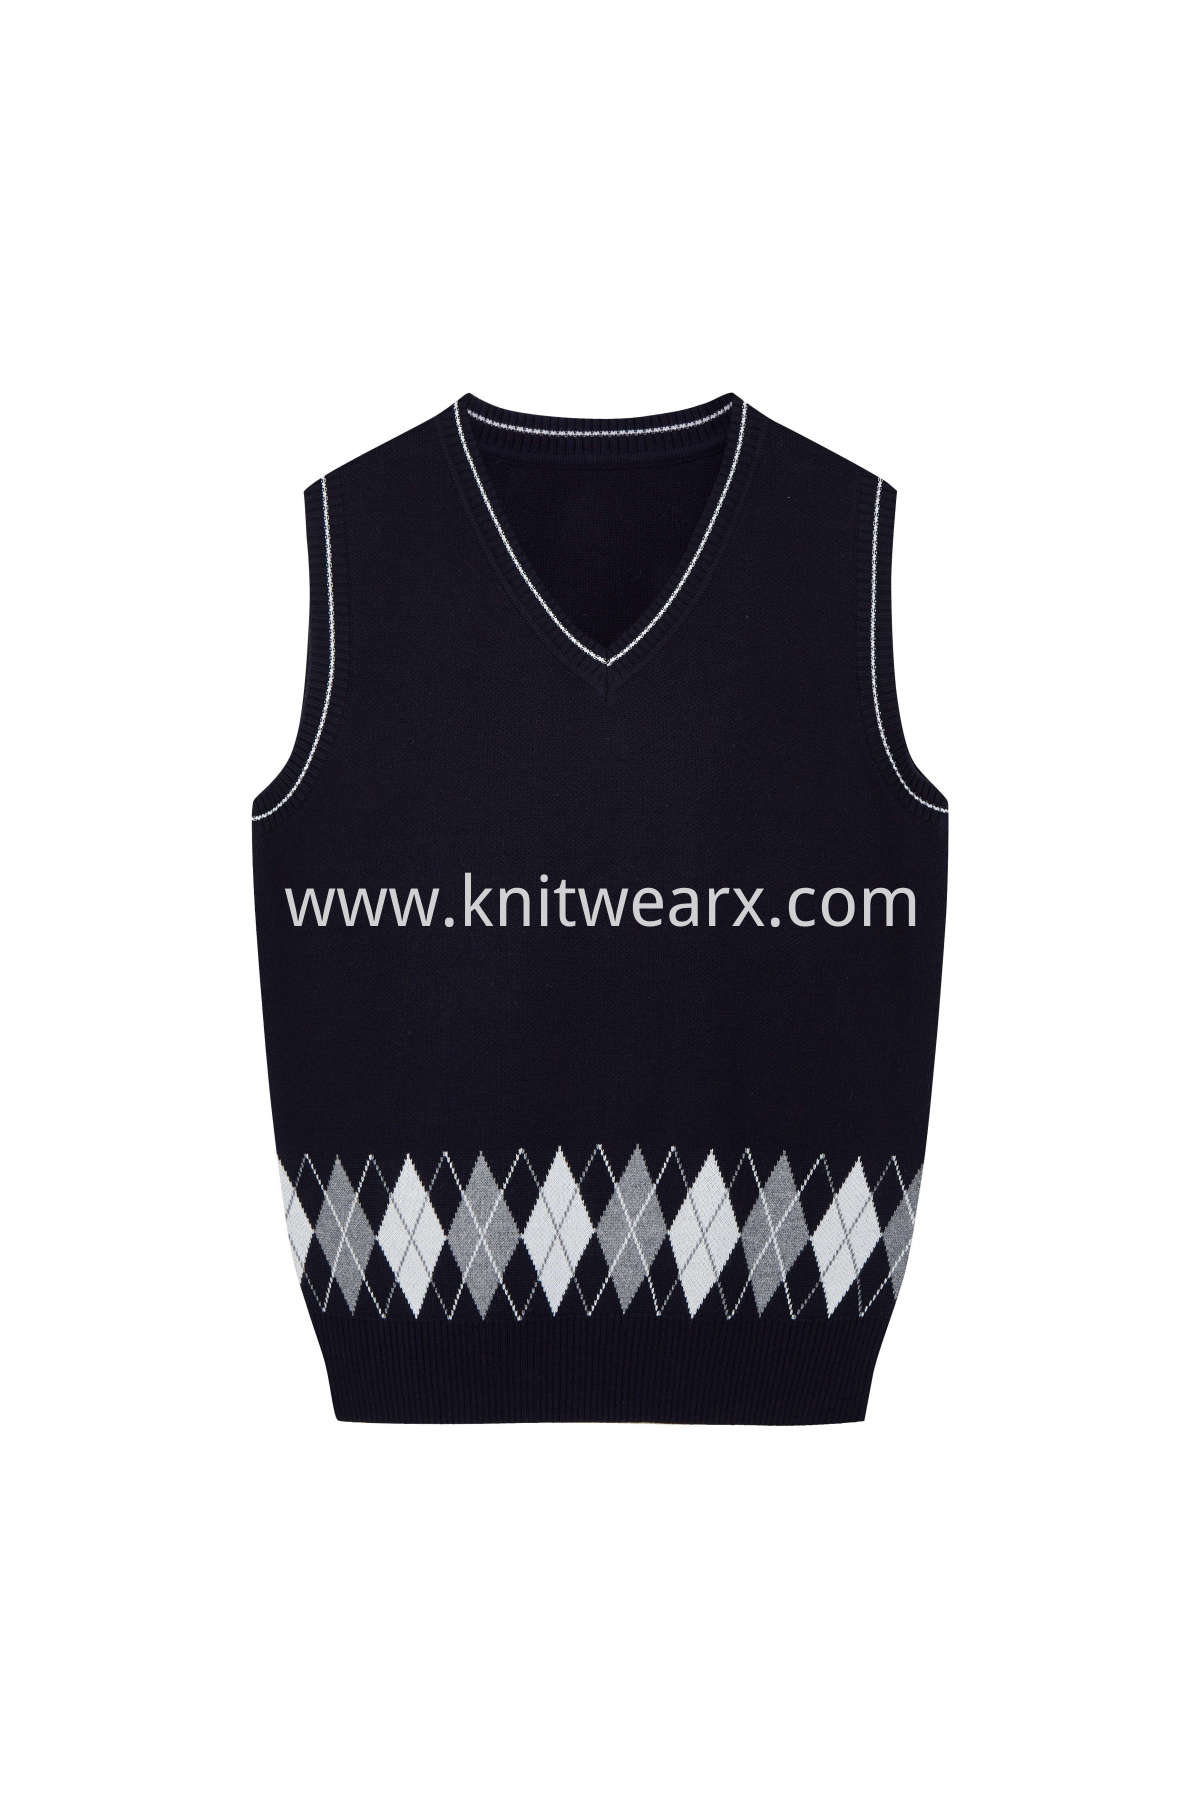 Kids's Sweater Jarquard Argyle Vest Cotton V-Neck School Uniform Pullover Top